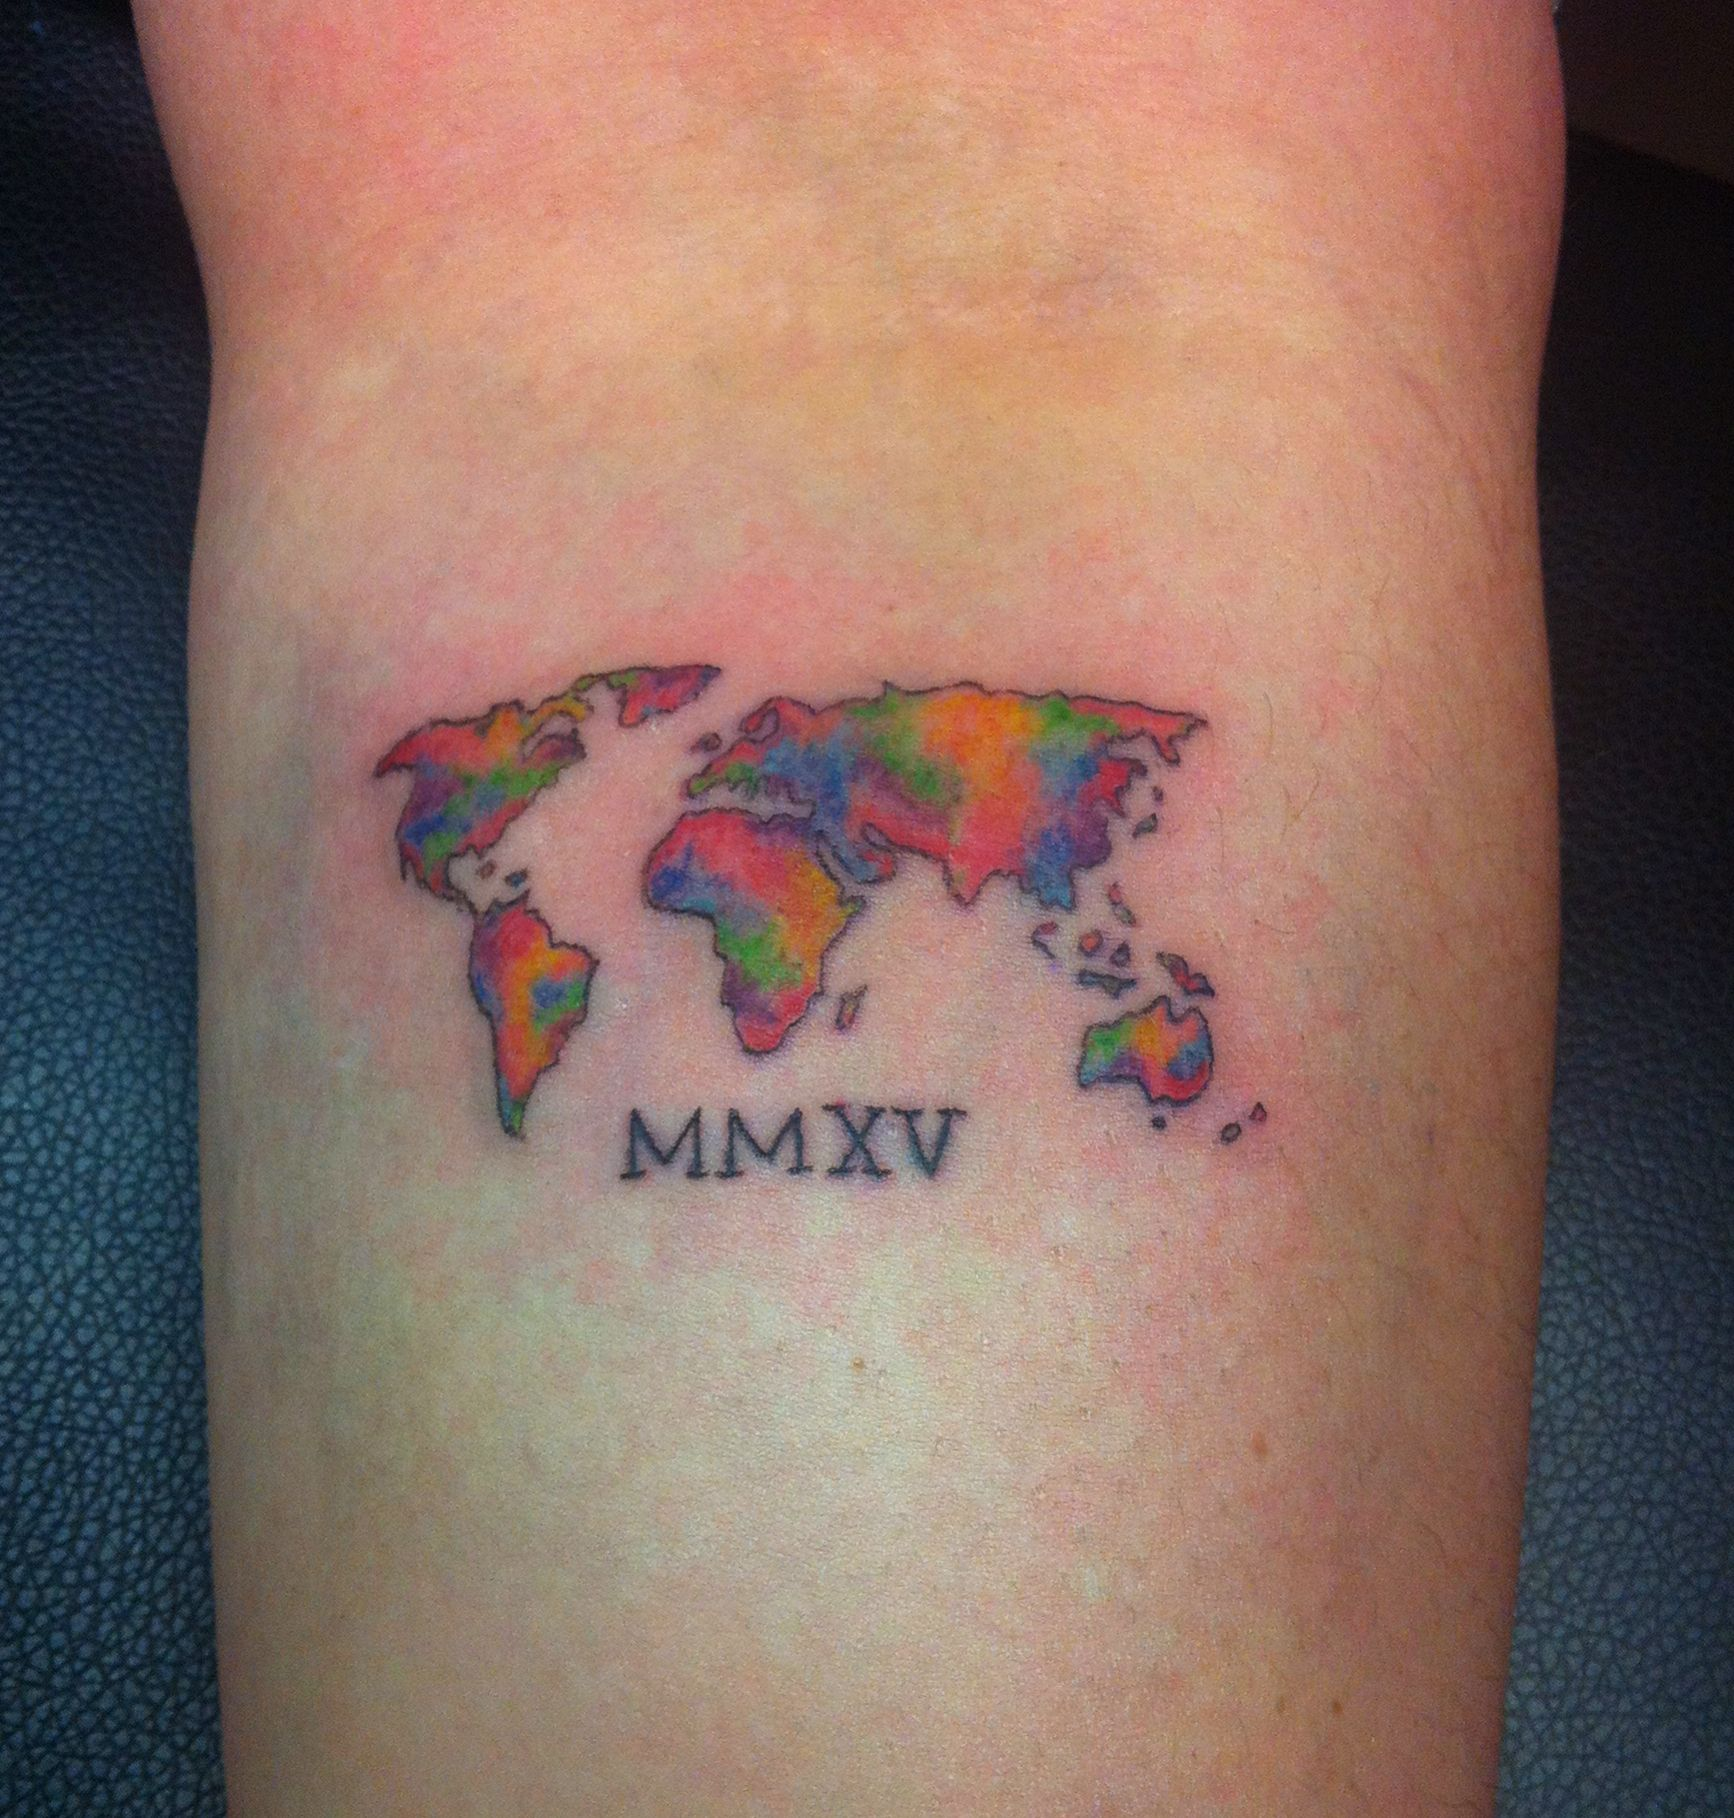 World map tattoo in watercolor style cool tattoos pinterest world map tattoo in watercolor style gumiabroncs Images